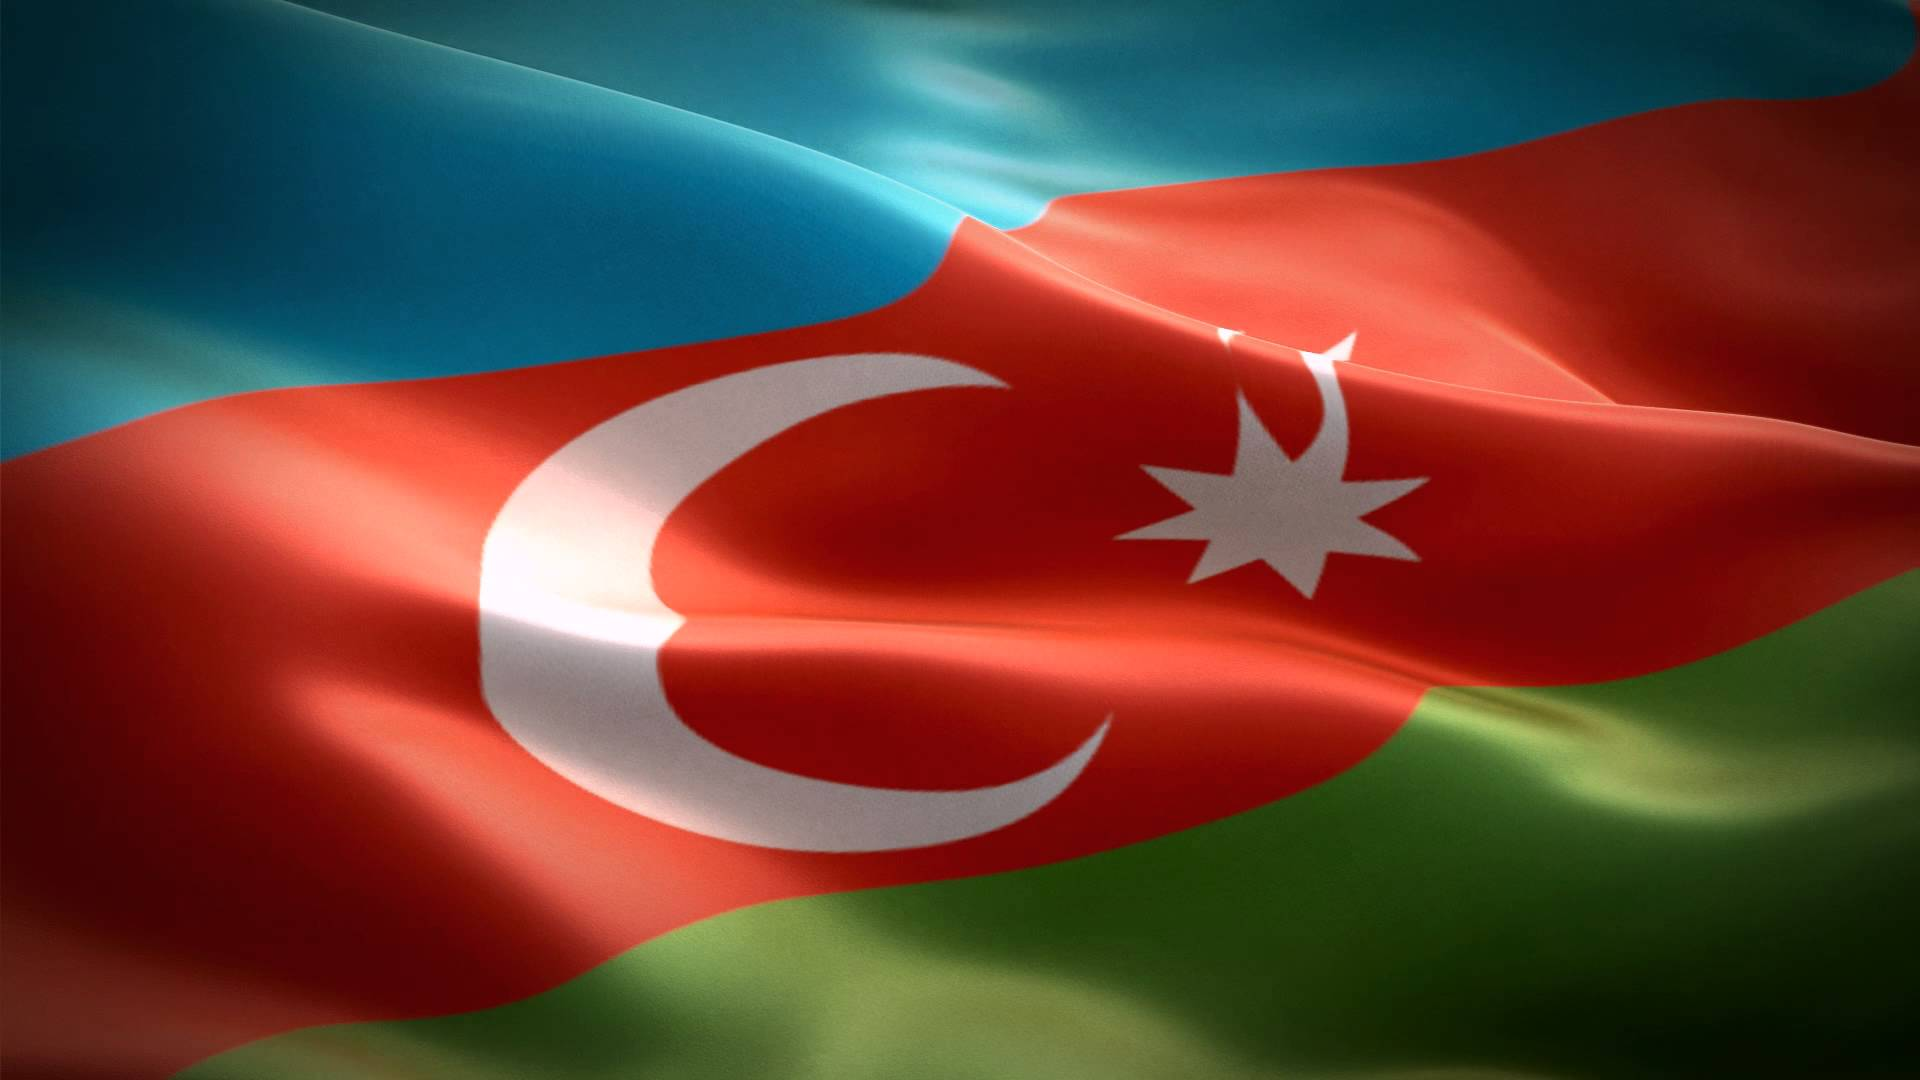 Amazing Flag Of Azerbaijan Pictures & Backgrounds